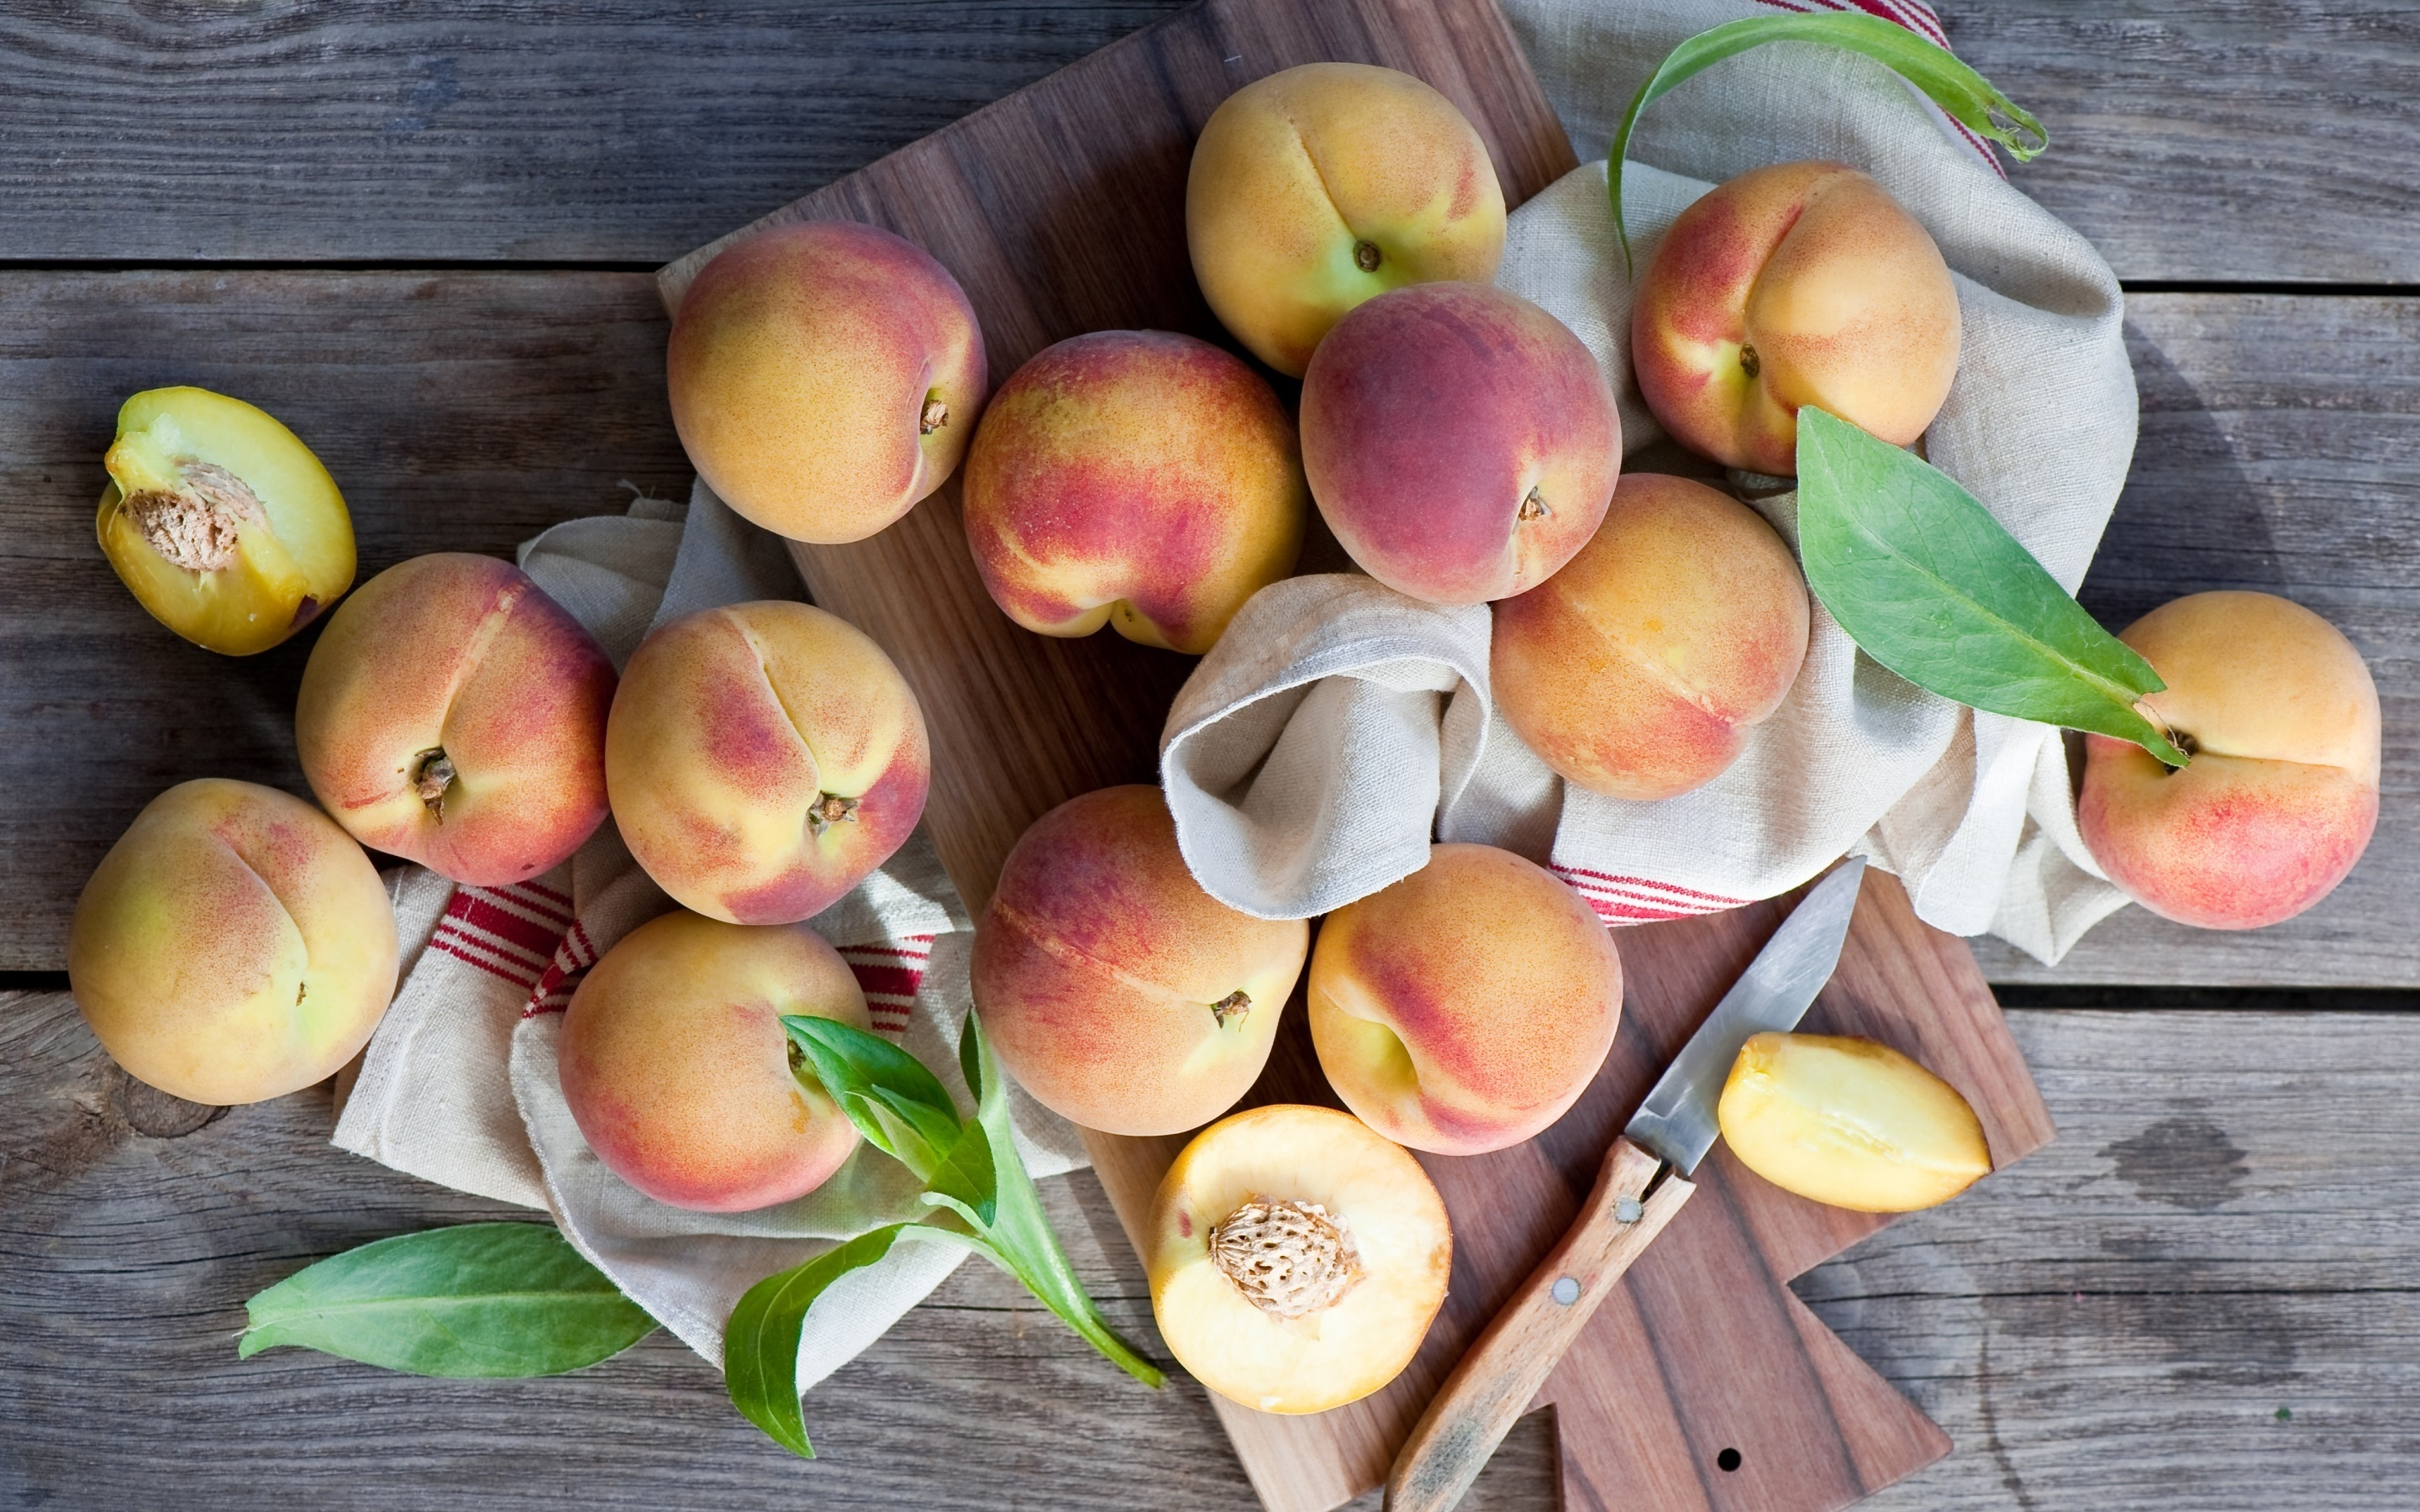 Peaches for 2880 x 1800 Retina Display resolution